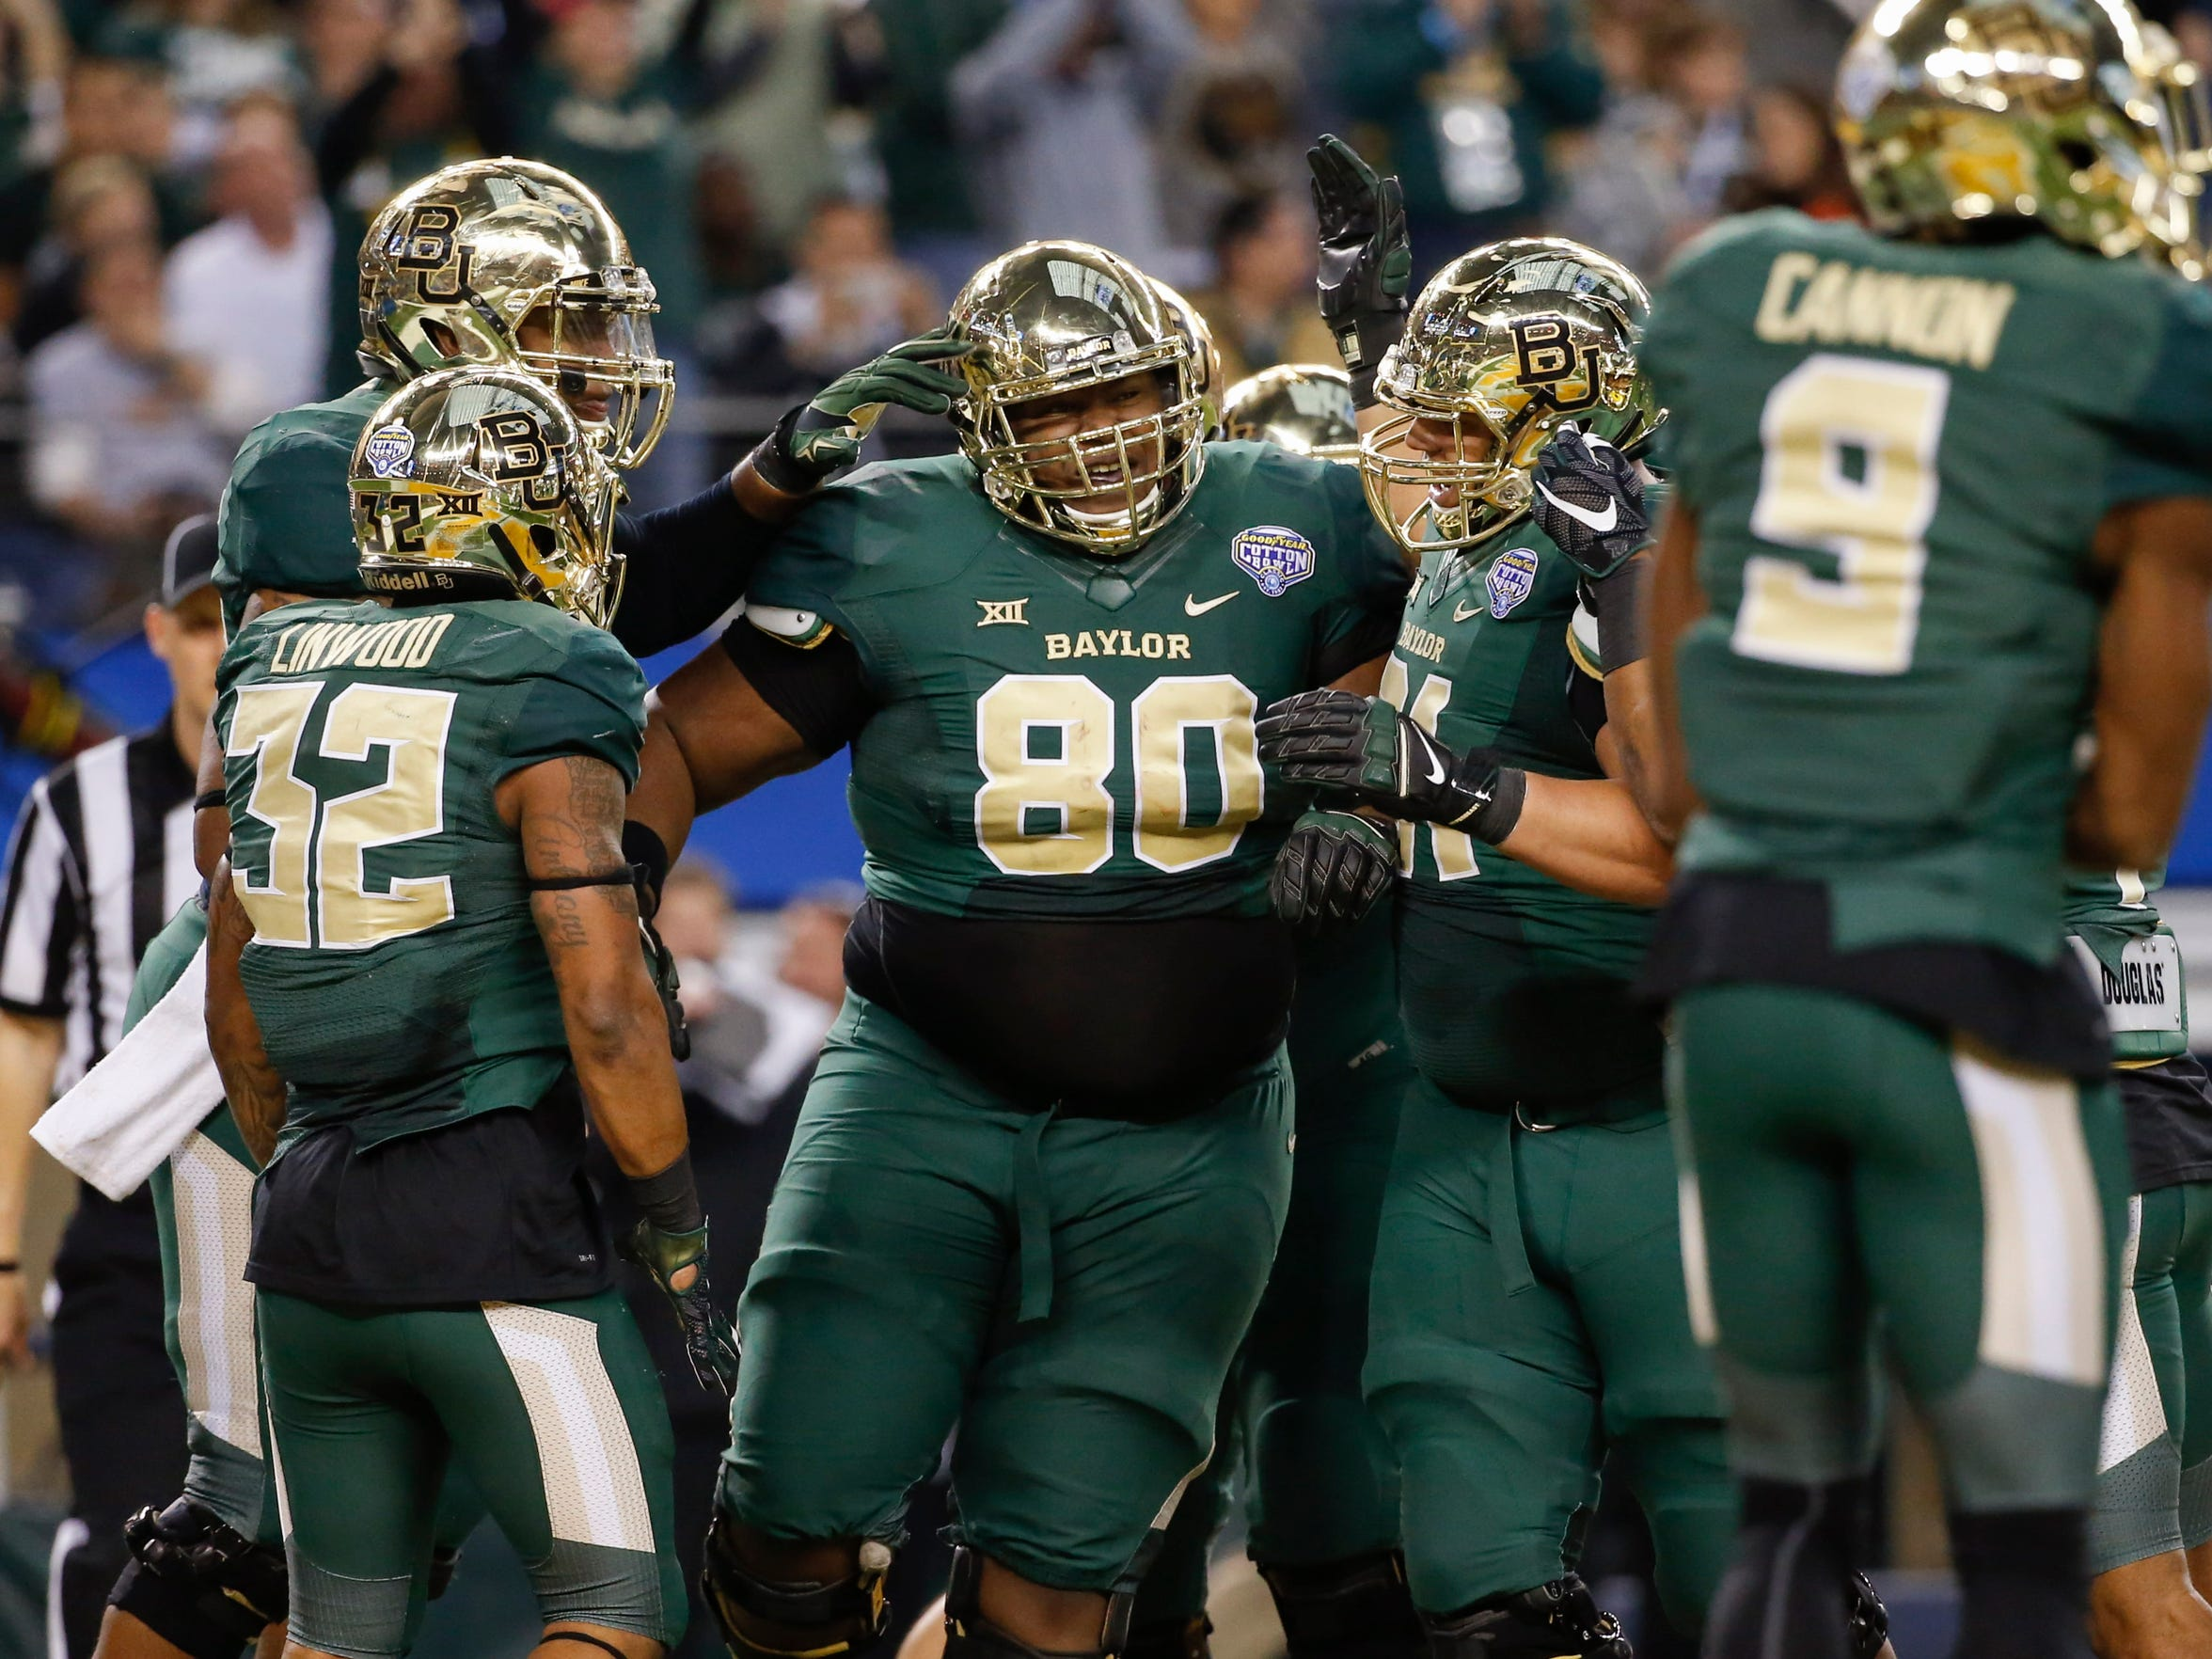 LaQuan McGowan (80) and Co. give Baylor one of the